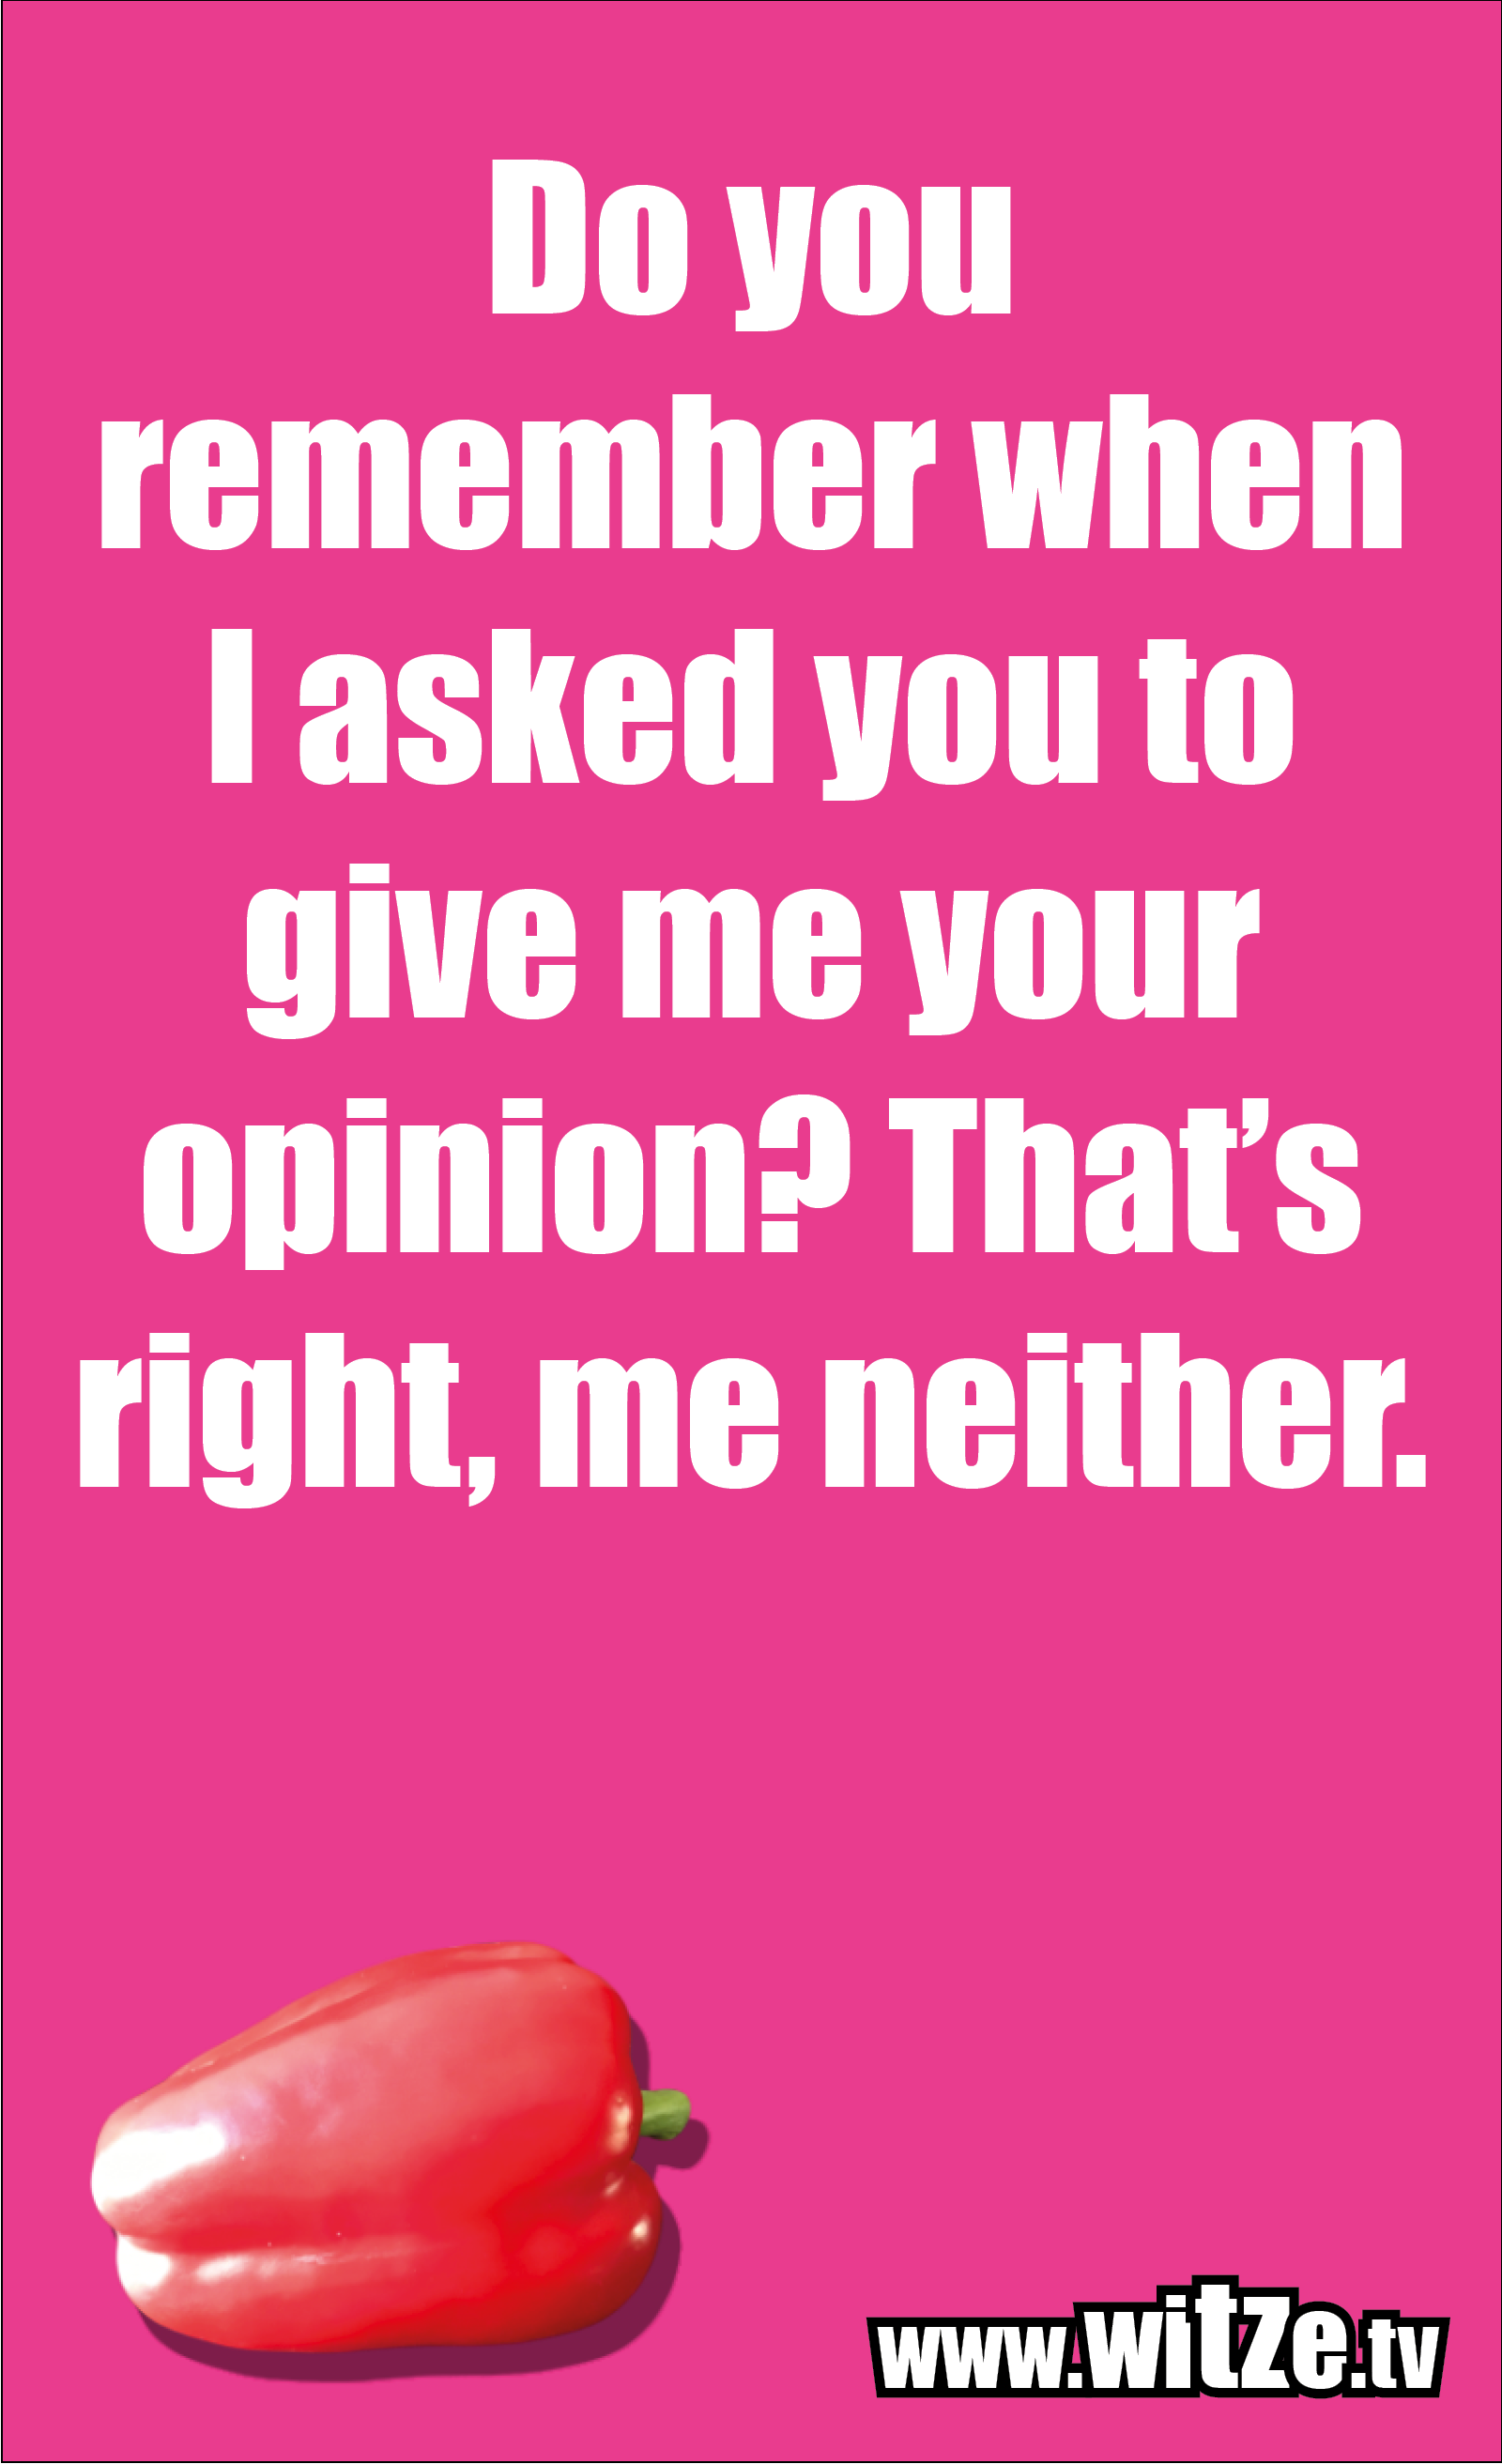 Funny sayings… Do you remember when I asked you to give me your opinion? That's right, me neither.